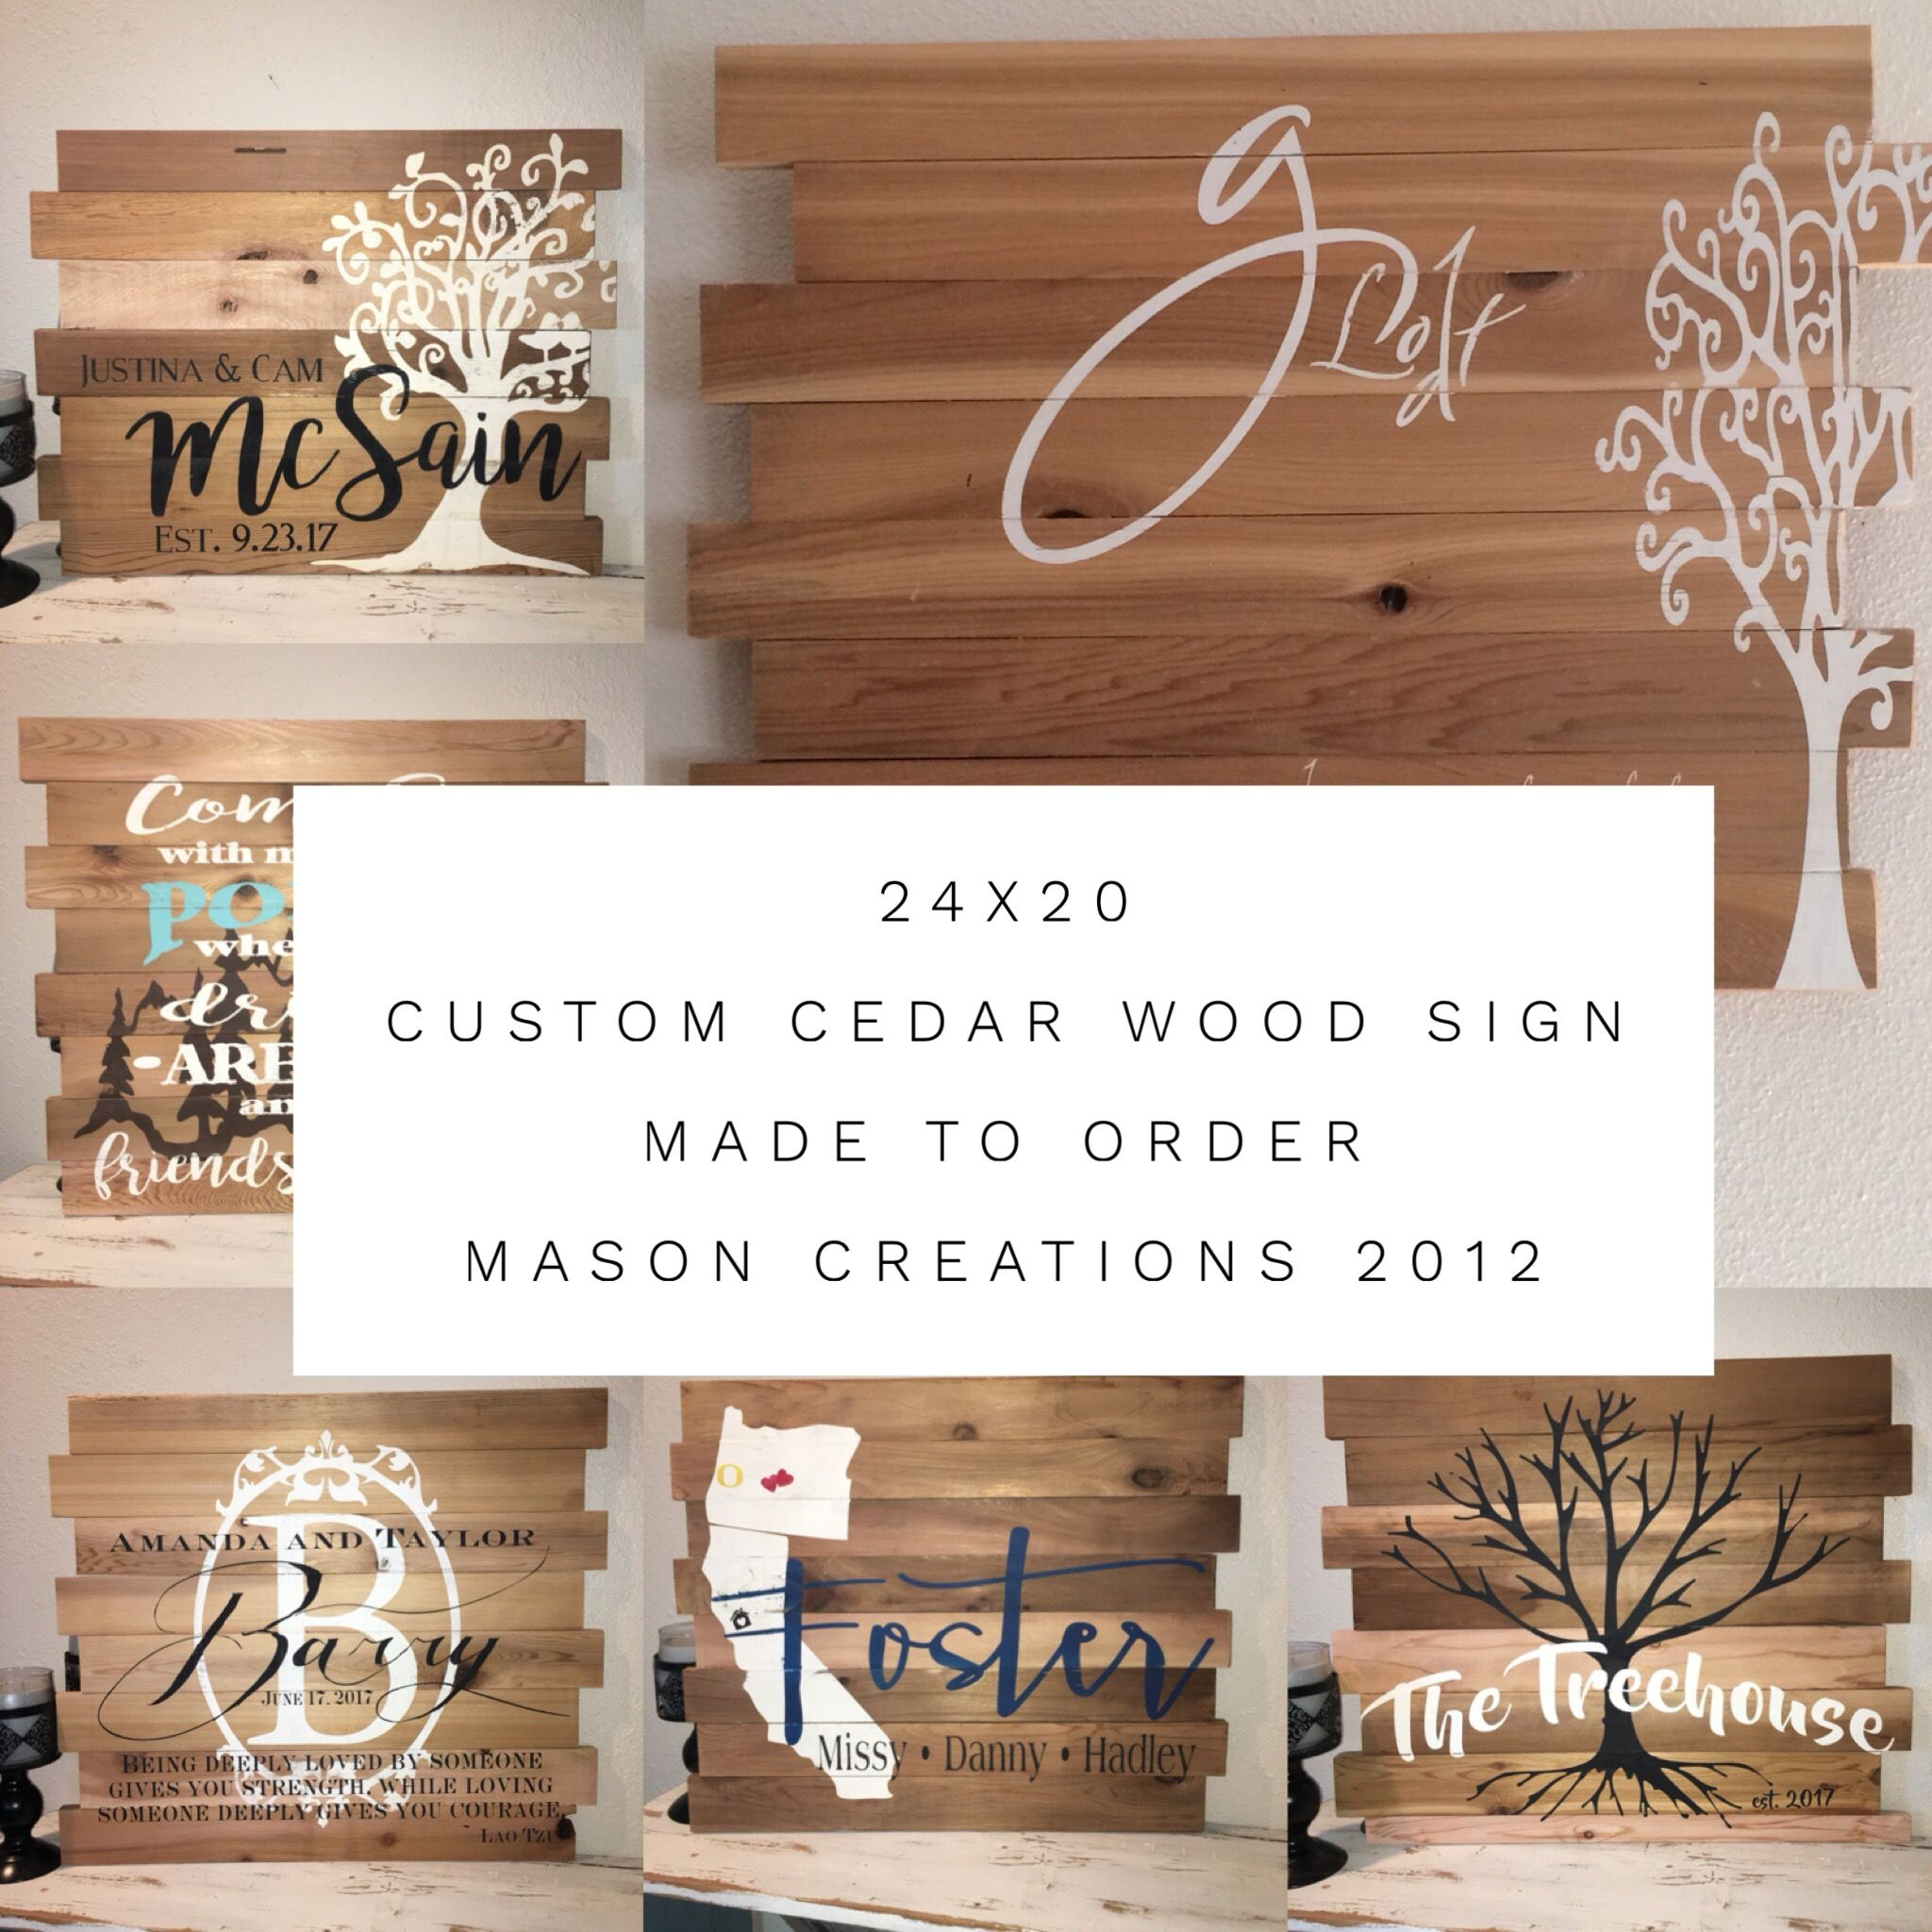 Custom Furniture Home Decor And Unique Jewelry Made For You By The Most Talented Makers In World Custommade